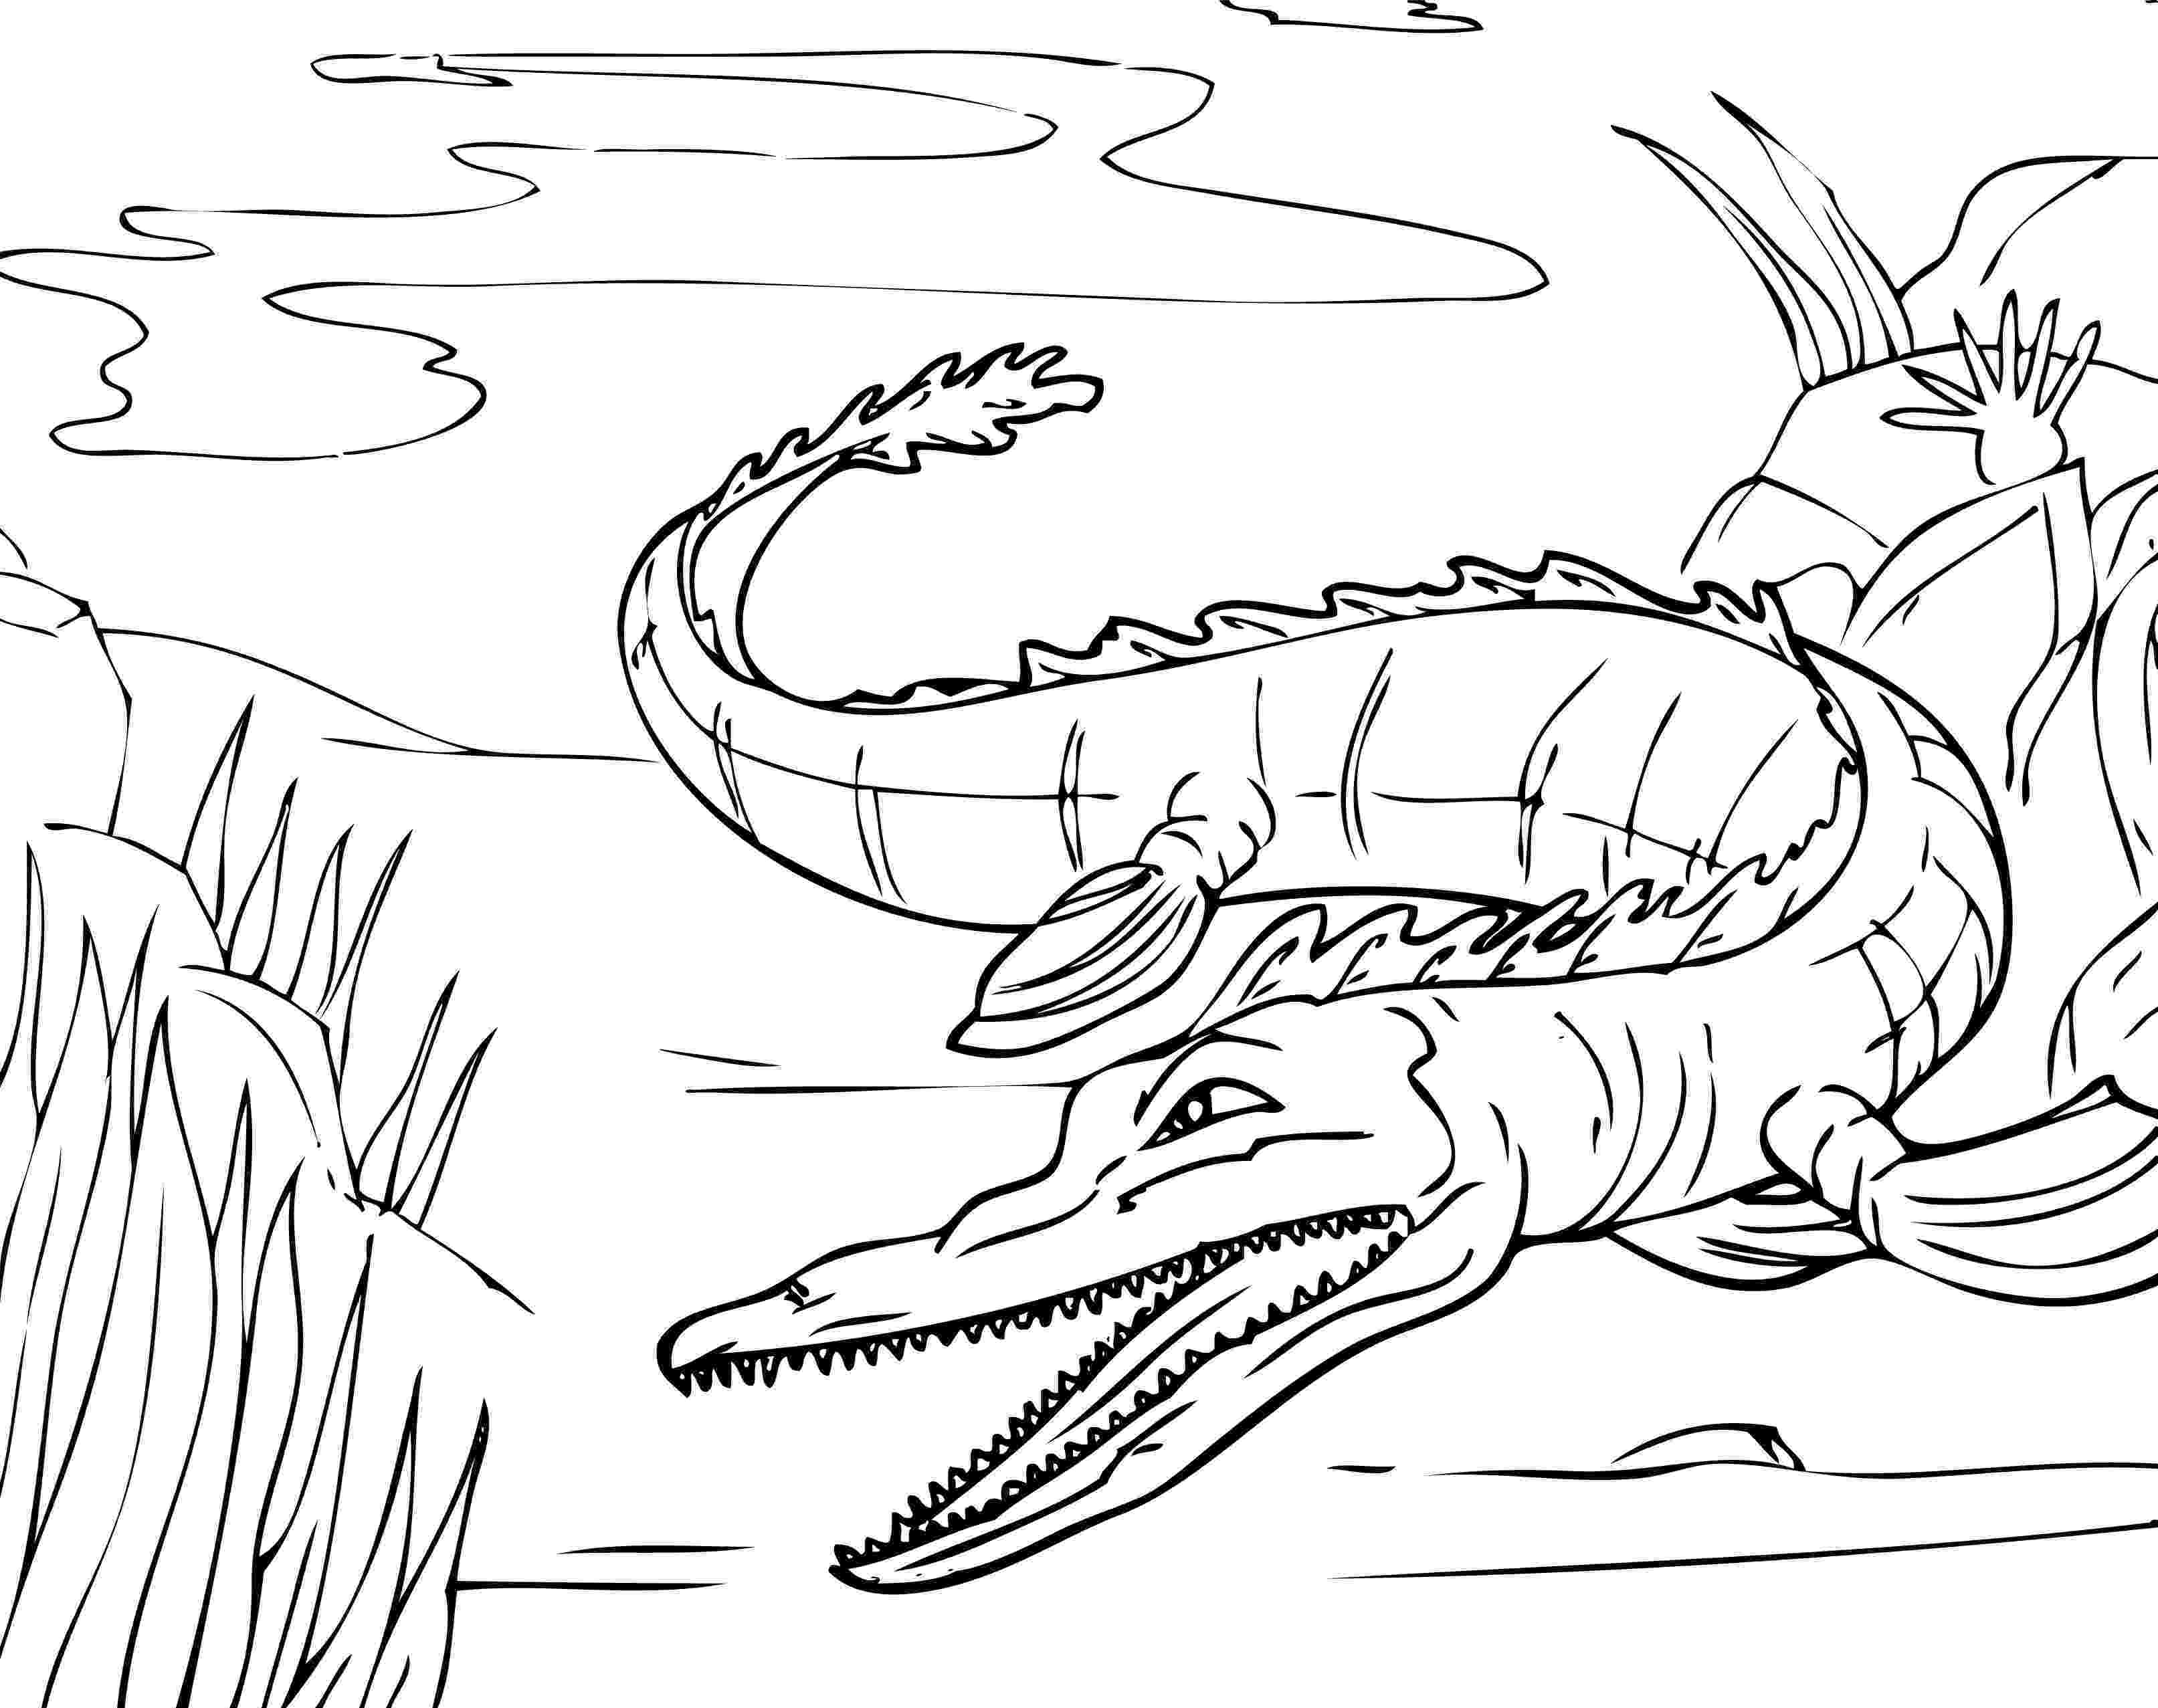 crocodile colouring page alligators and crocodiles coloring pages download and crocodile colouring page